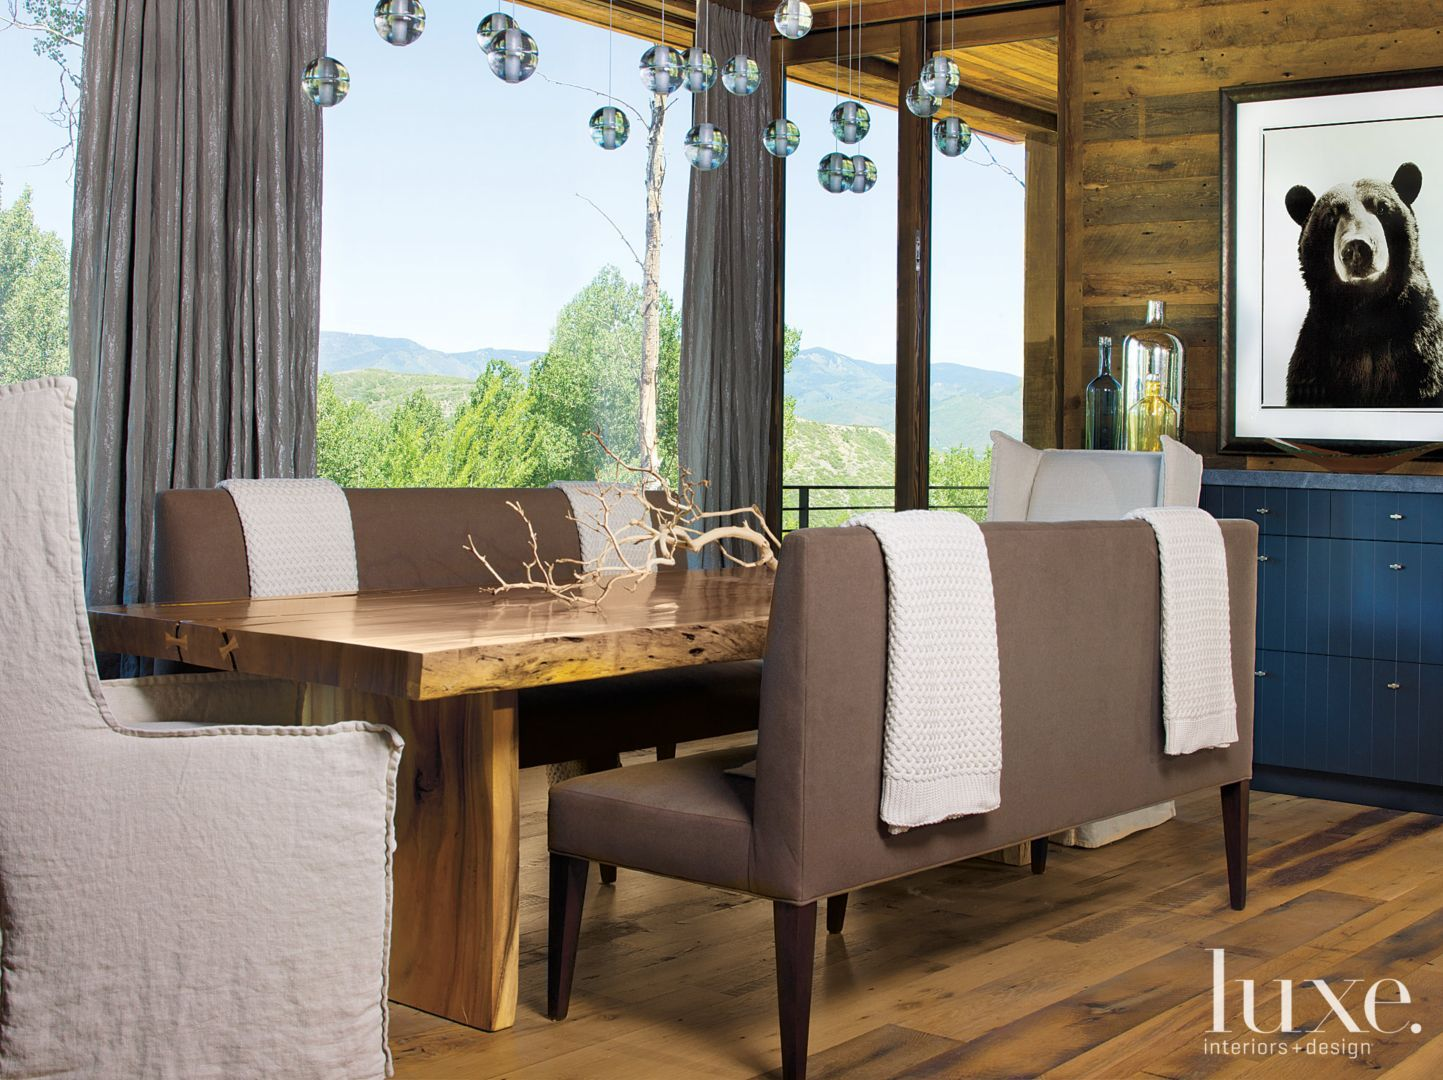 This narrow solid wood dining table adds warmth and a bit of rustic charm to a modern dining room.